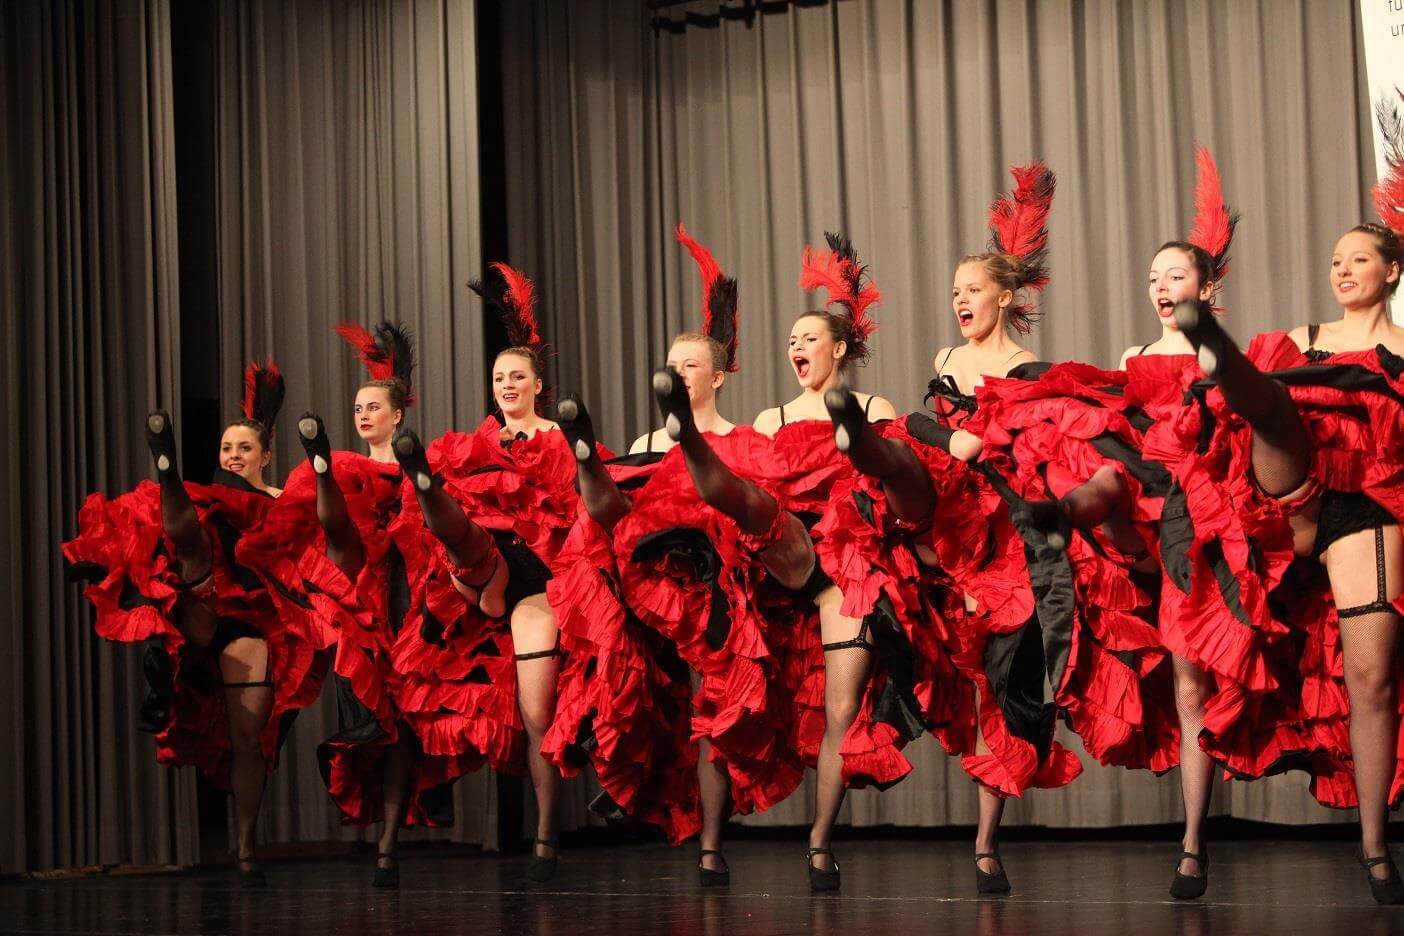 showdance cancan6